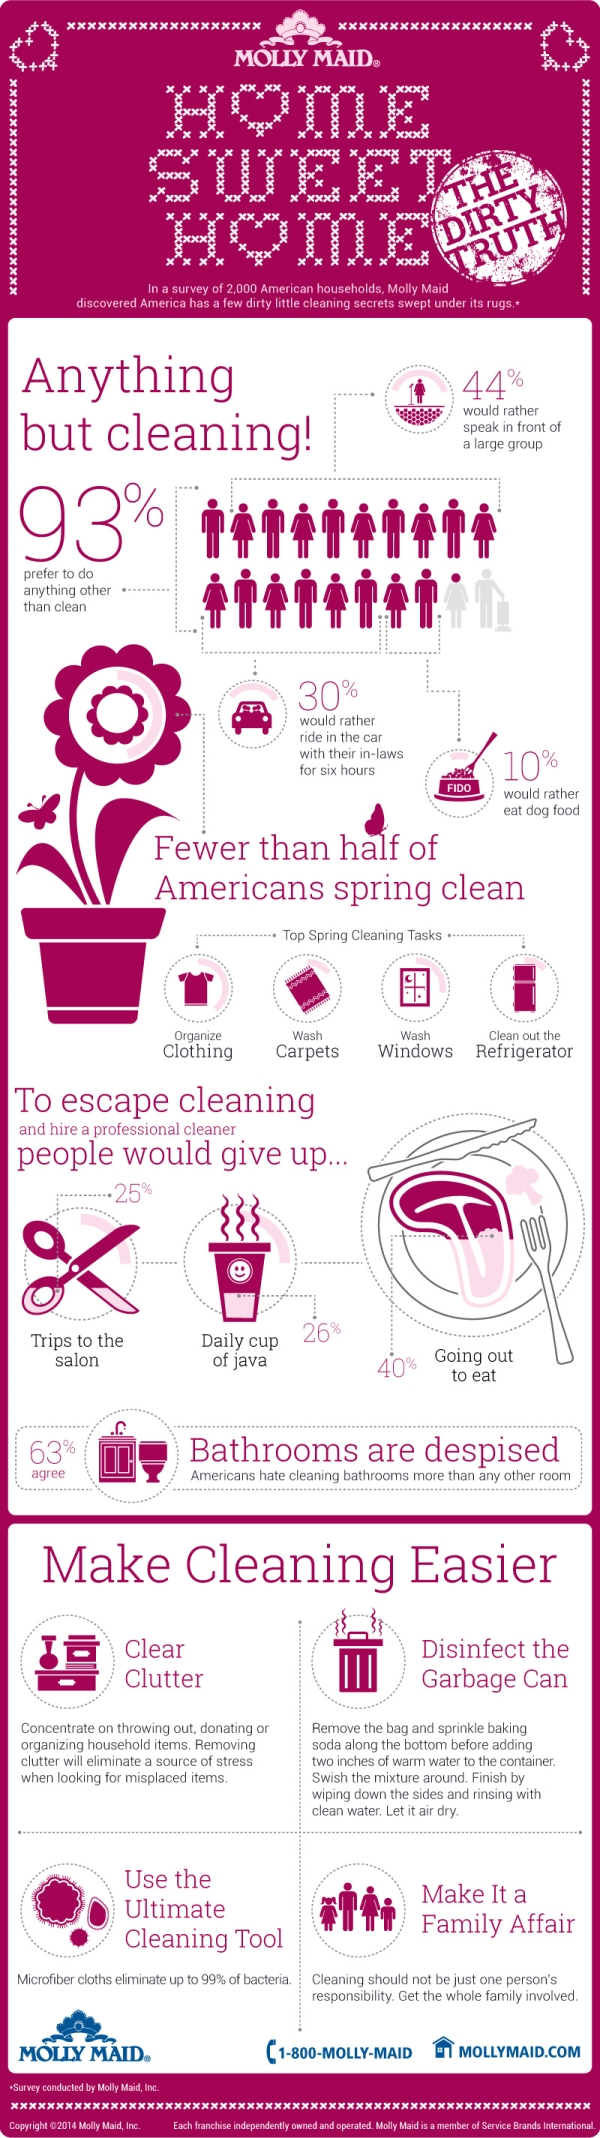 Home Sweet Home flyer with information on a clean home